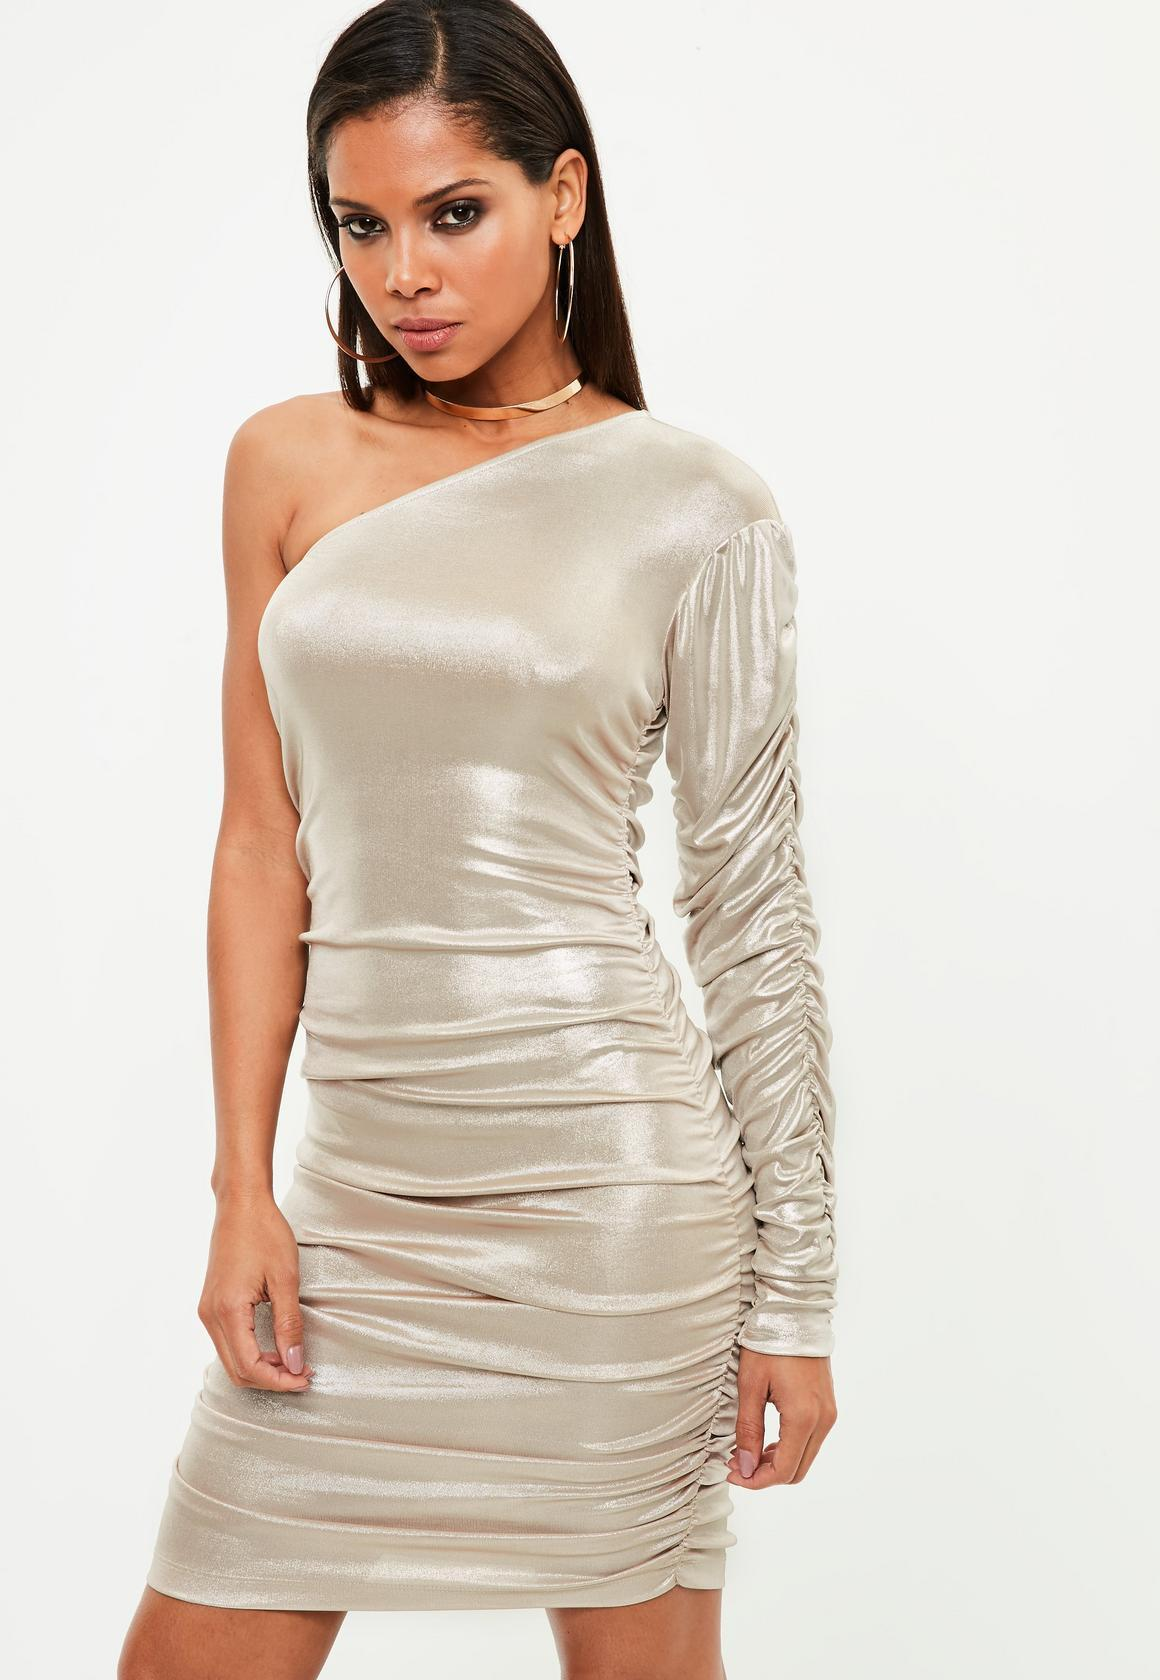 【海外限定】Missguided人気ドレス☆Metallic One Shoulder Ruch